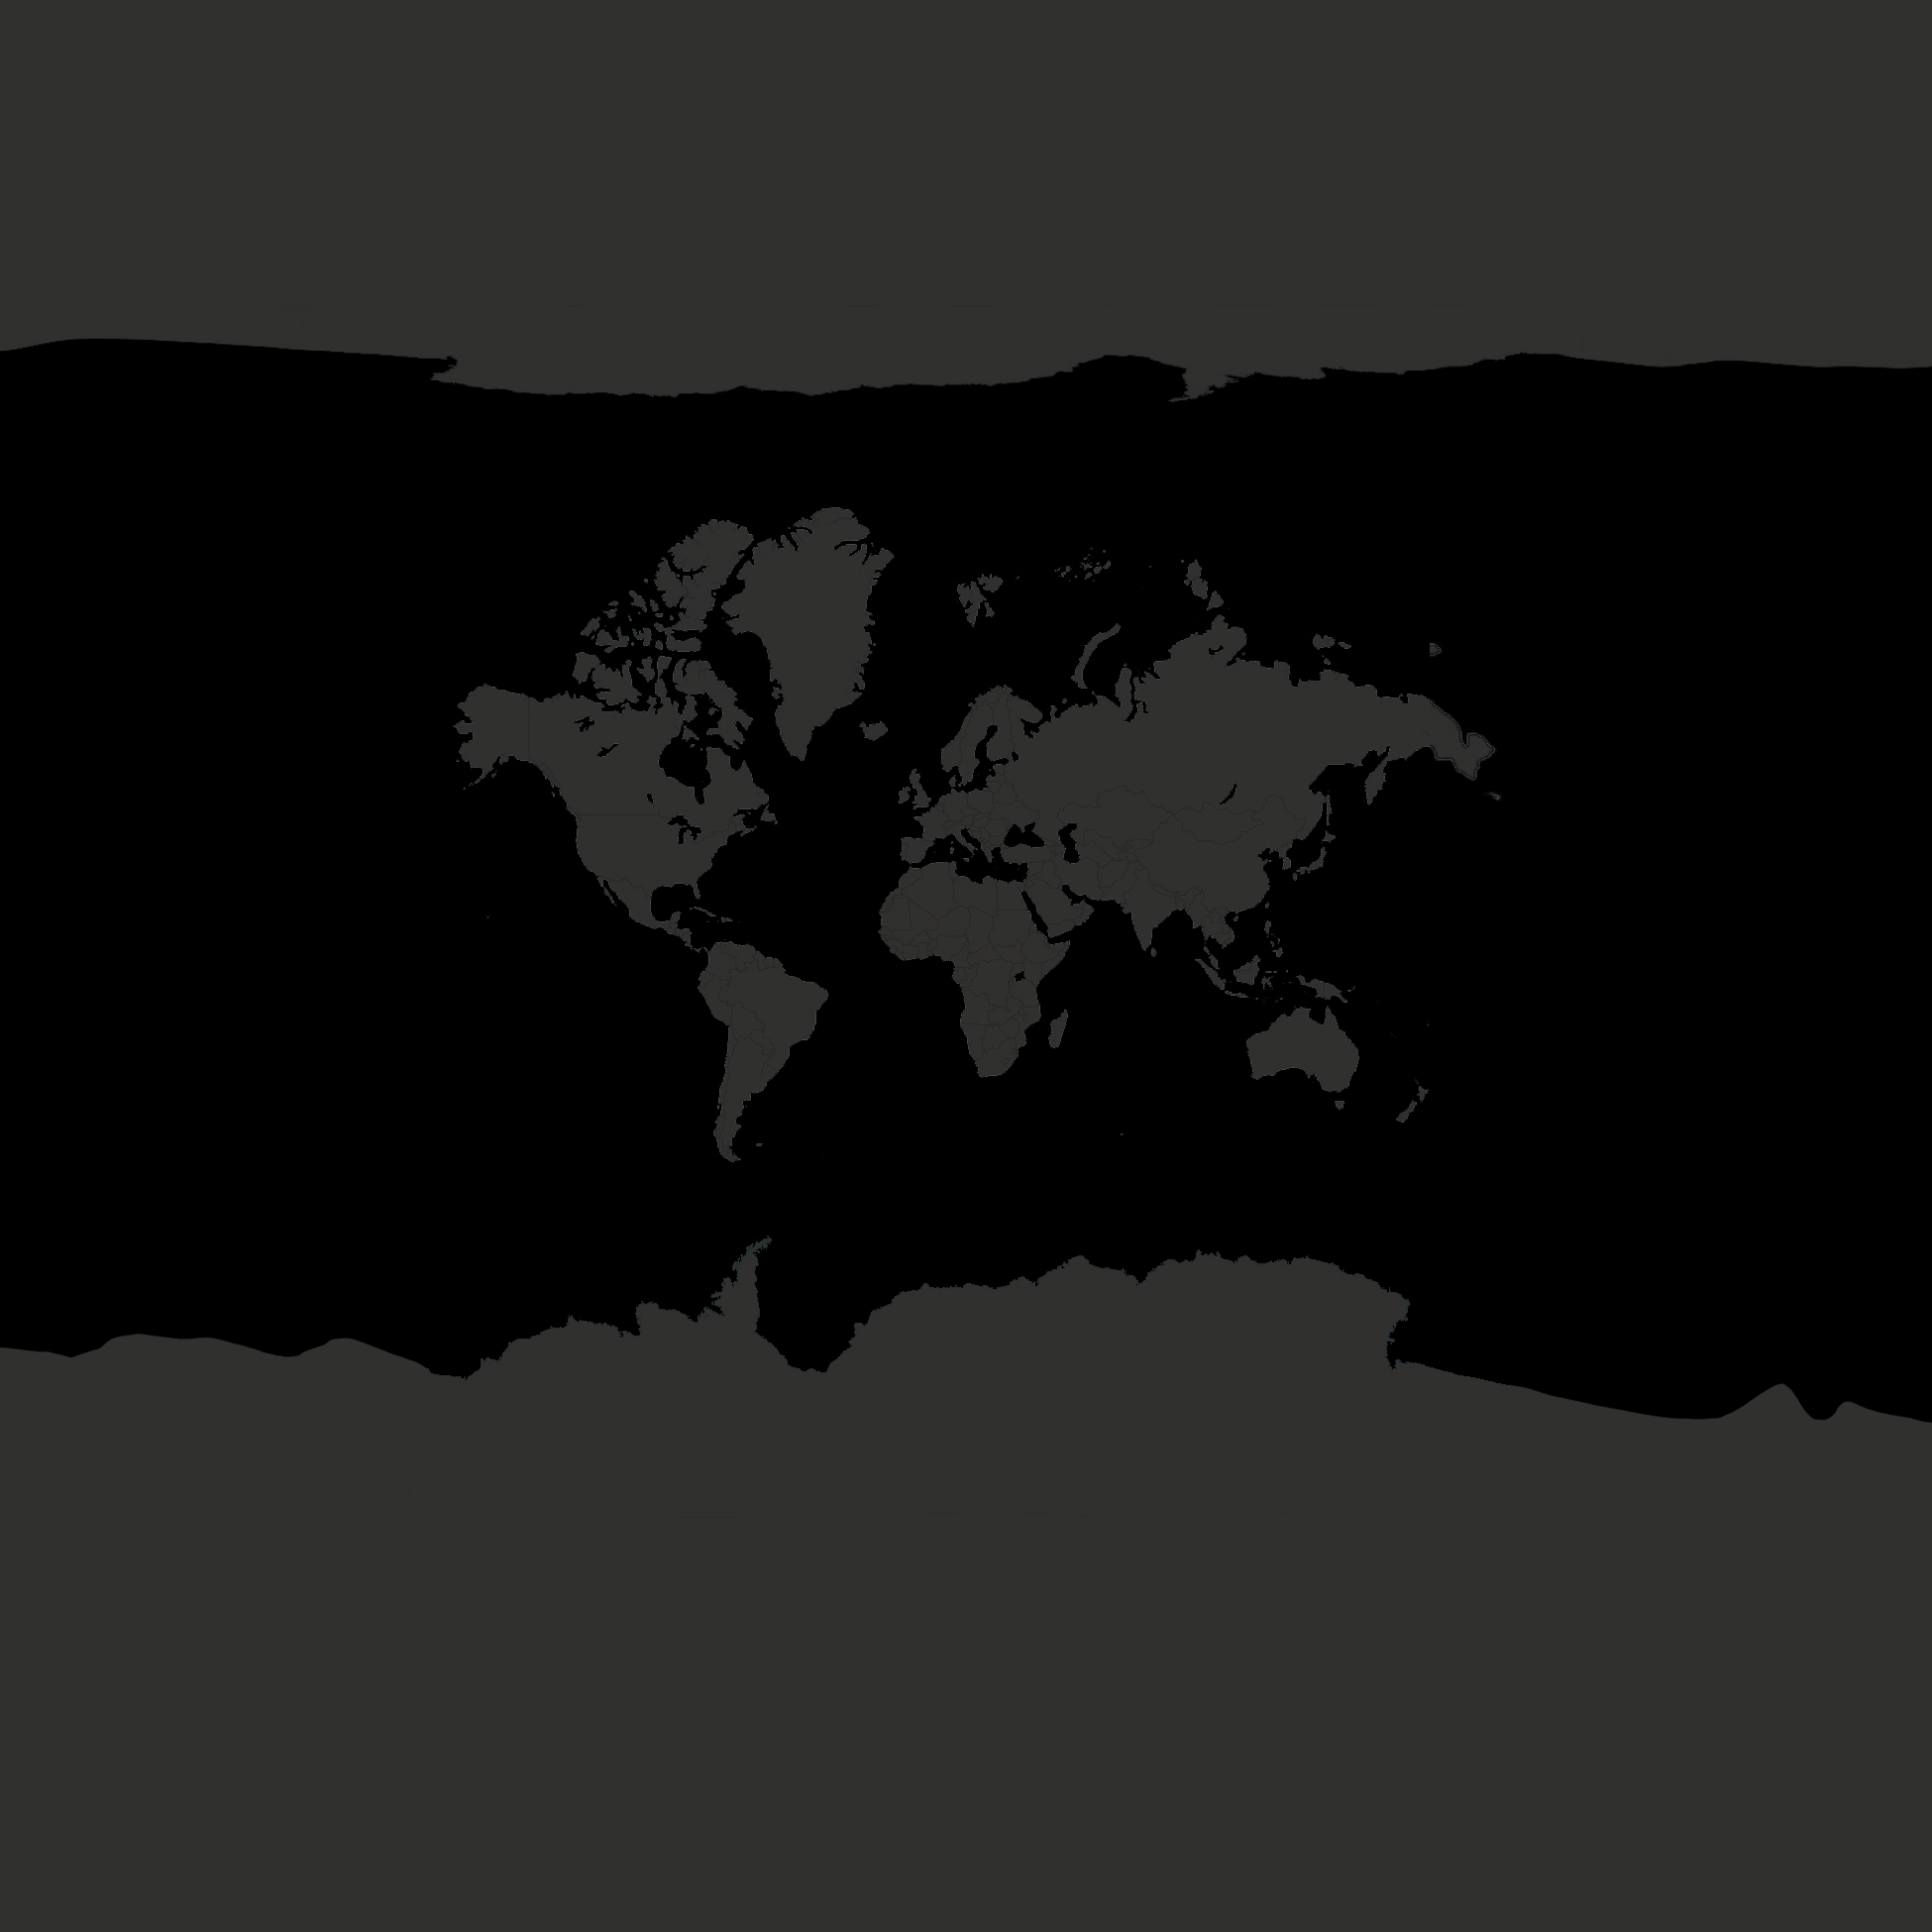 Customized World map in black and gray